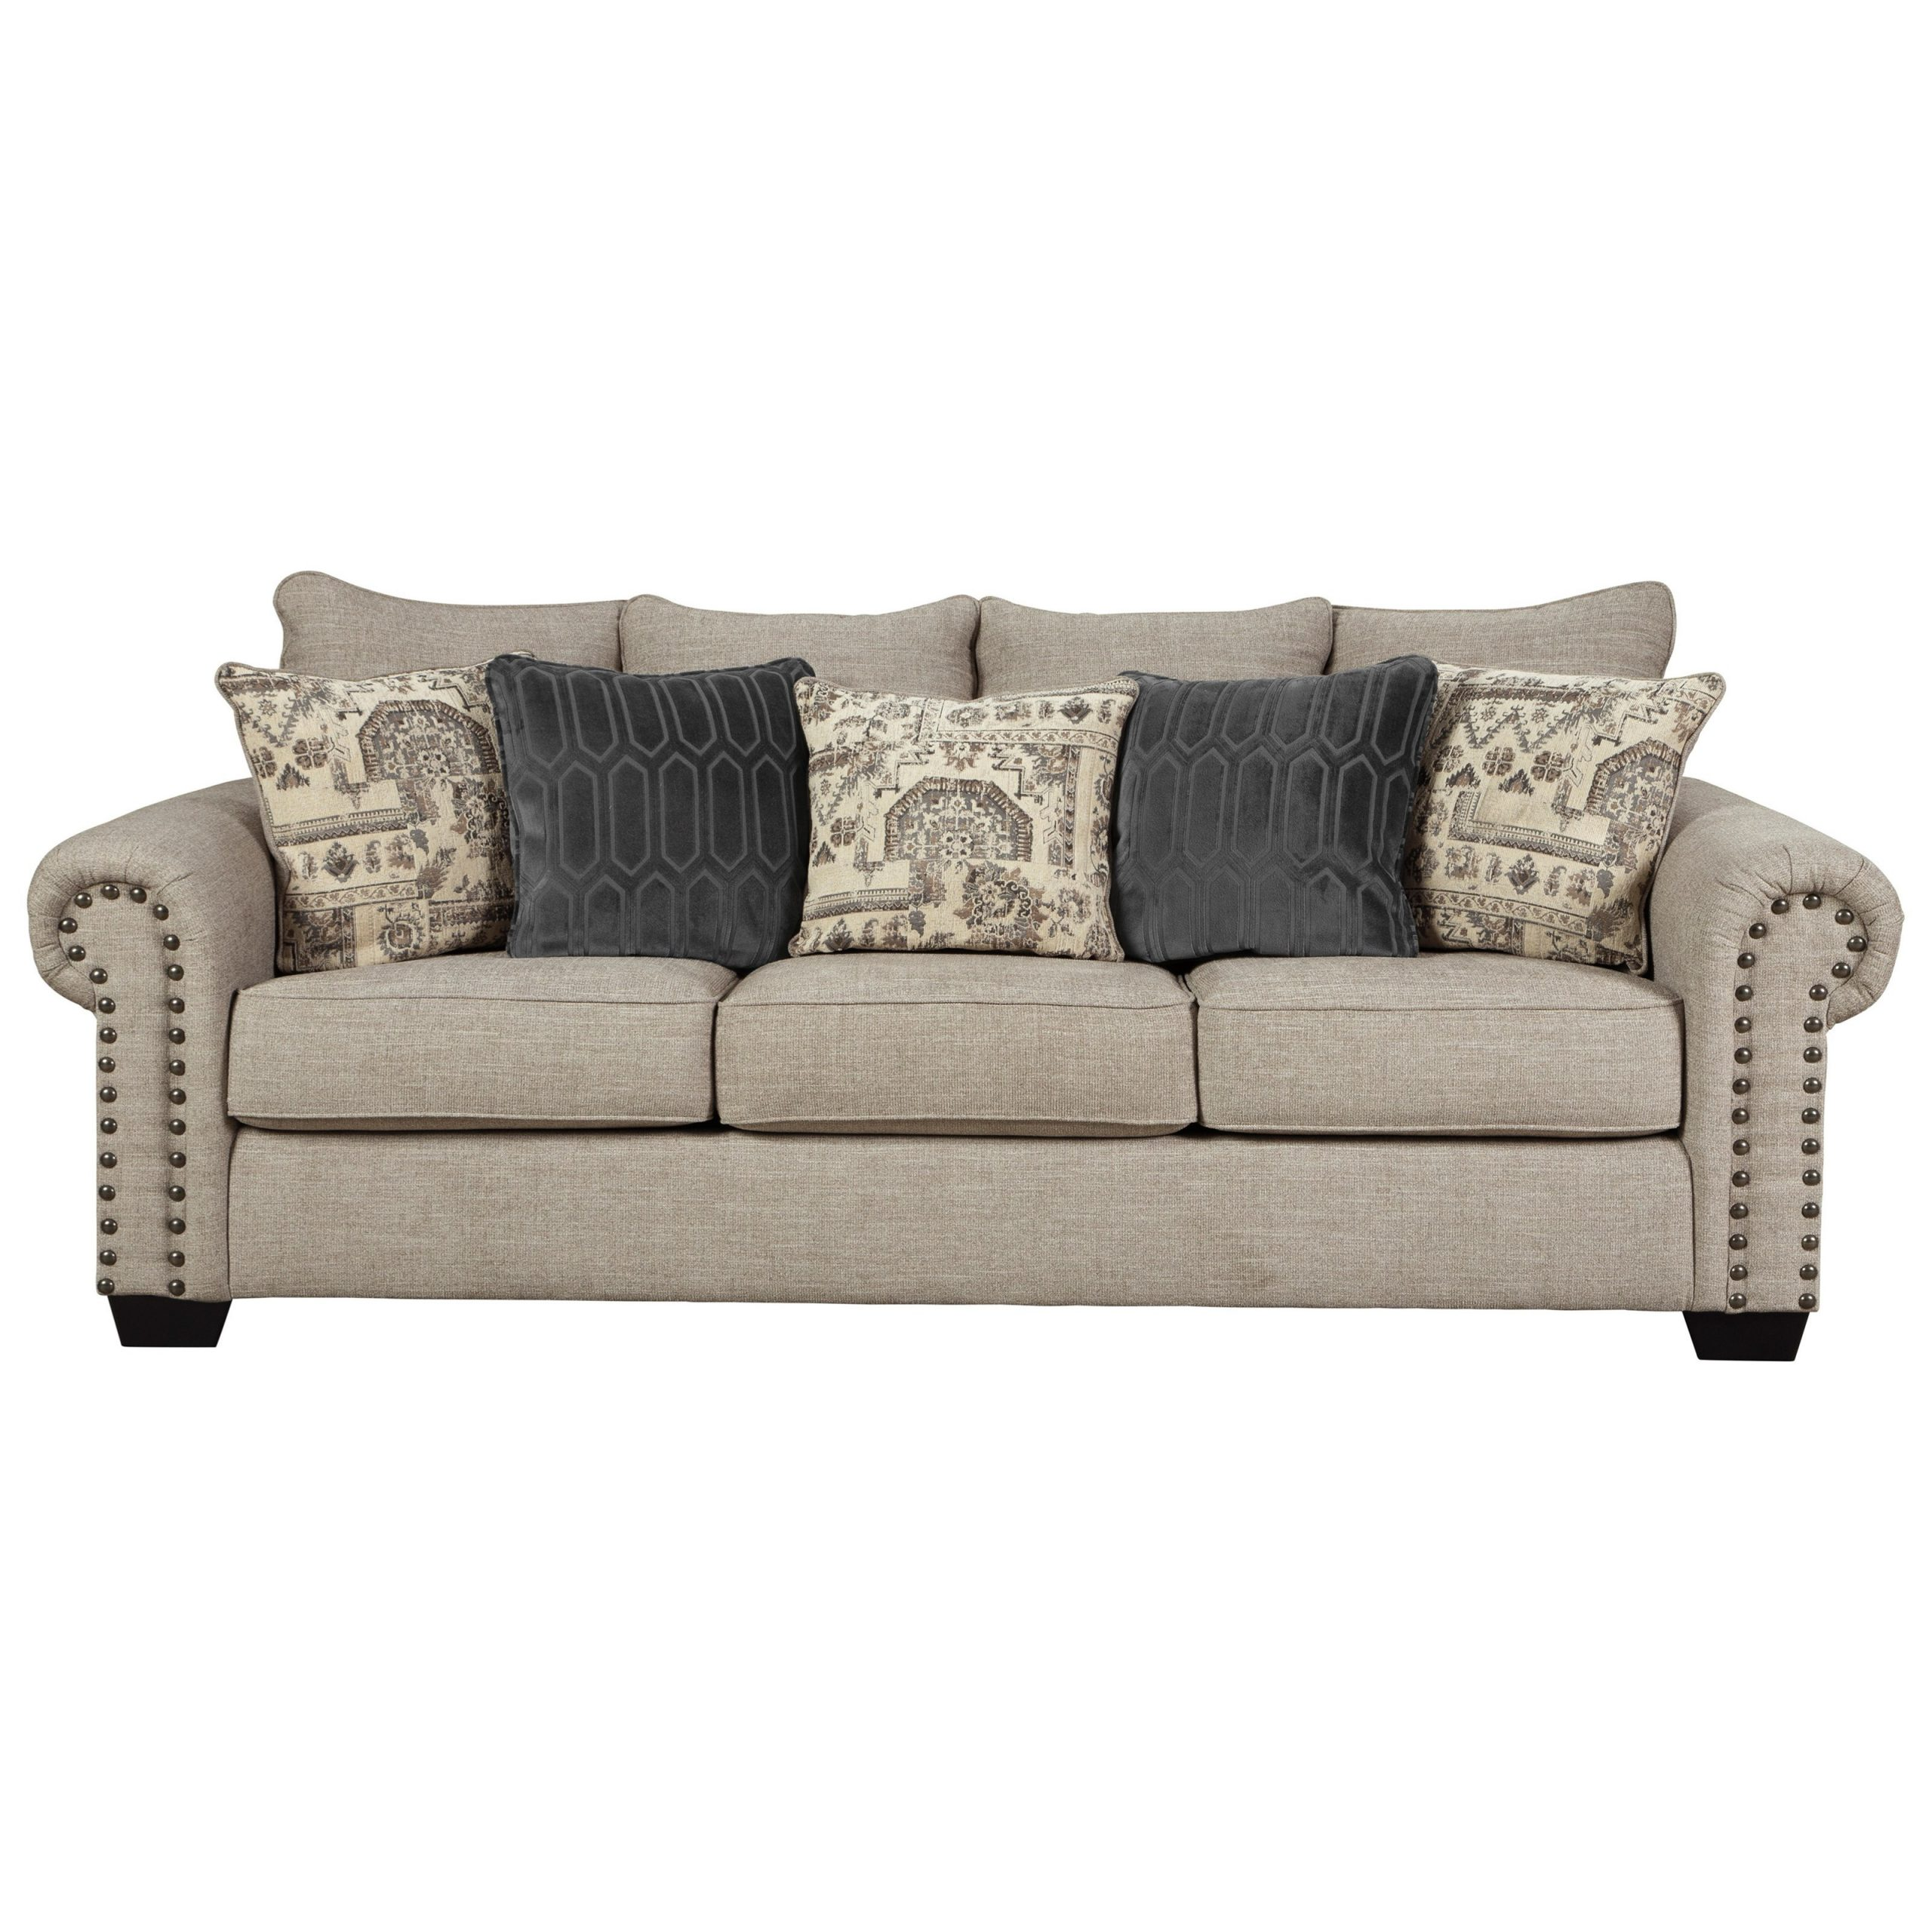 Favorite 2pc Polyfiber Sectional Sofas With Nailhead Trims Gray With Regard To Signature Designashley Zarina 9770438 Transitional (View 4 of 20)